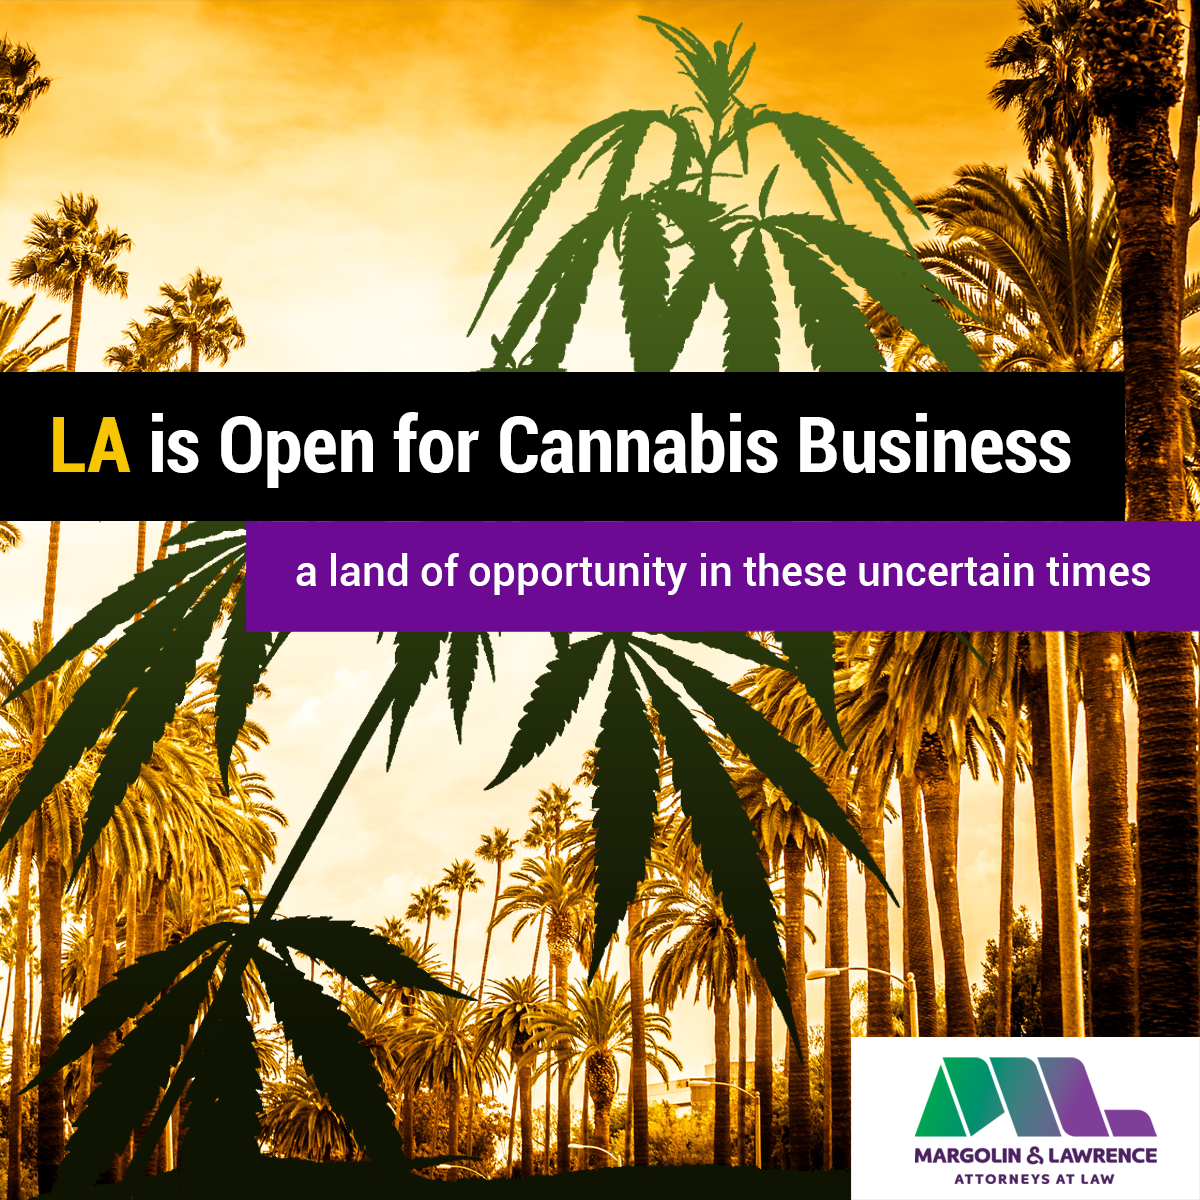 Los Angeles is open for cannabis business